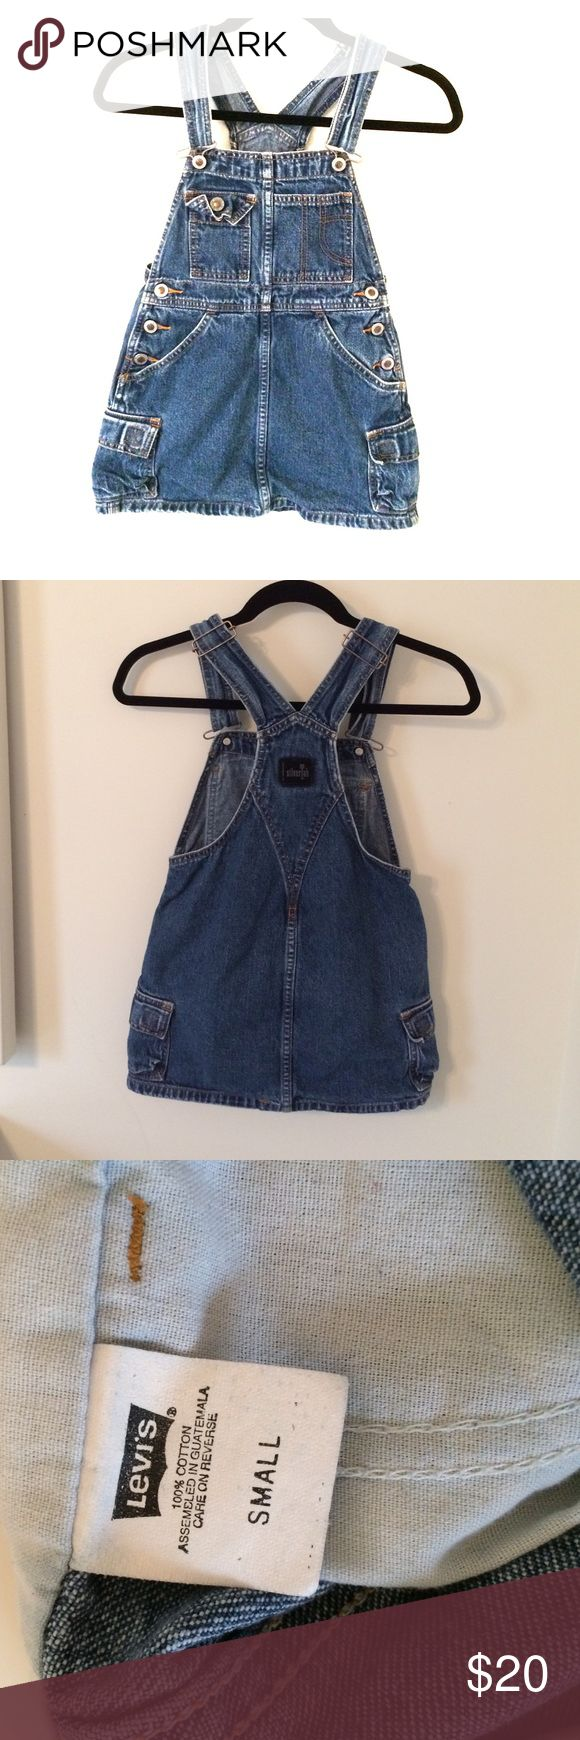 Levi's Jean Jumper/Skirted Overalls This is a sturdy vintage Levi's piece with orange stitching and six pockets. The straps are adjustable and are in their smallest setting in the photos. Levi's Dresses Casual